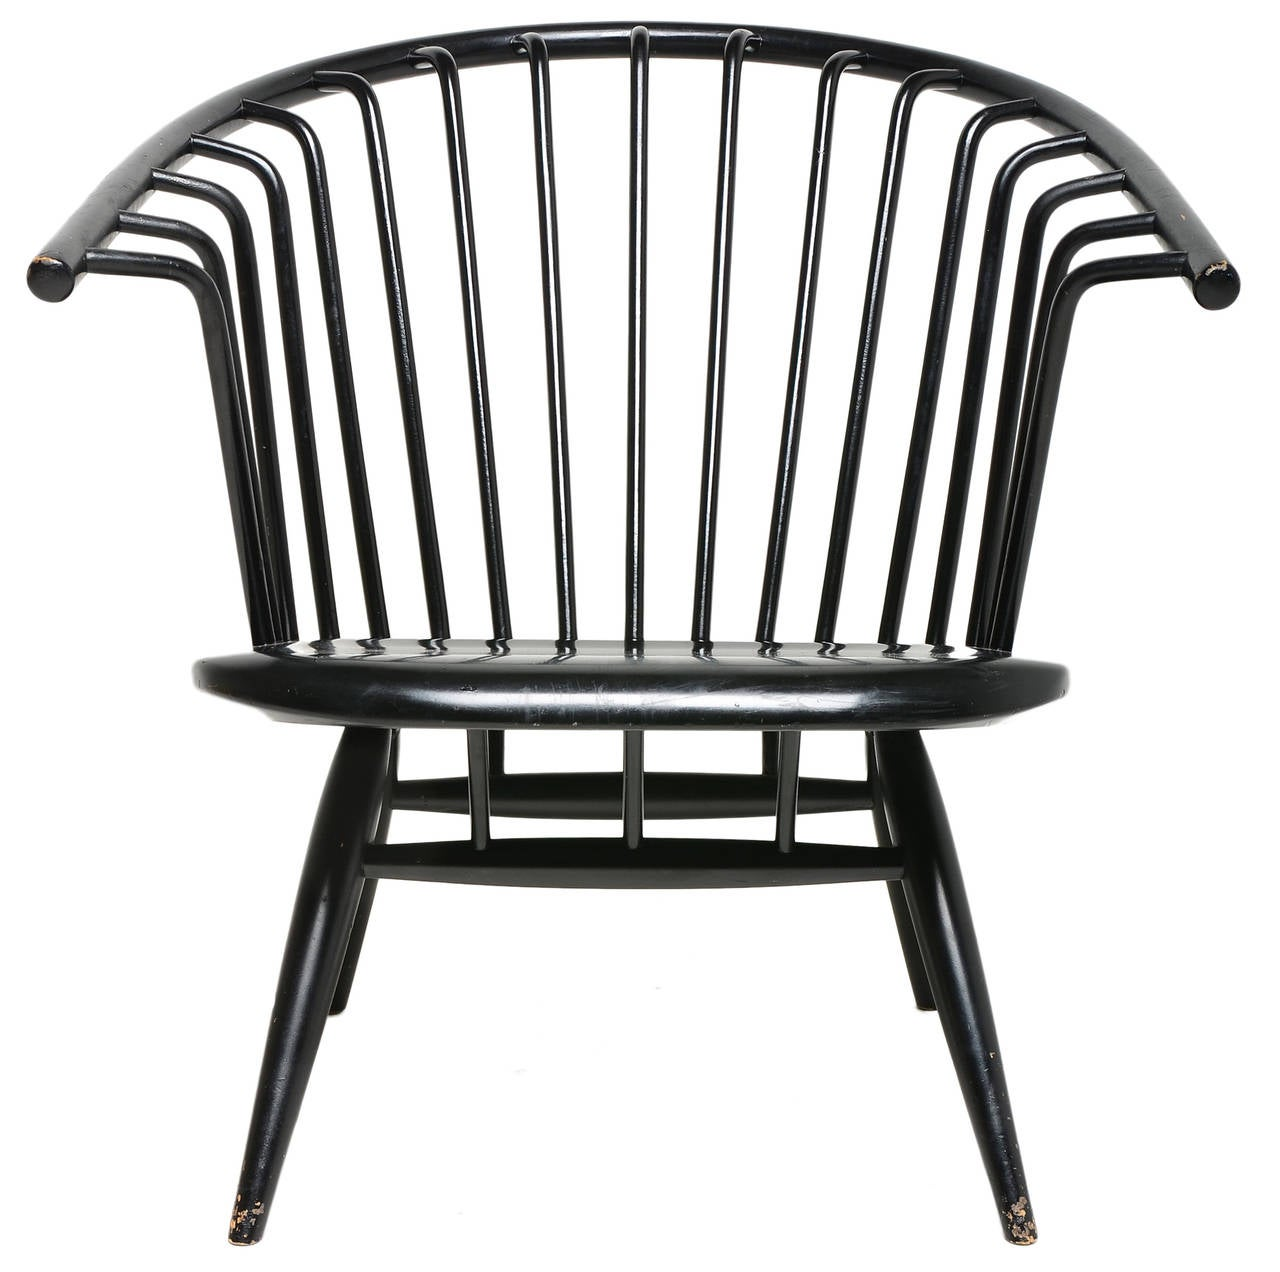 An exceptional iconic chair designed by Finnish Master Ilmari Tapiovaara. A rare example of Scandinavian design. Less than 5000 of these chairs were ever created. Winner of the American Institute of Design award in 1963.